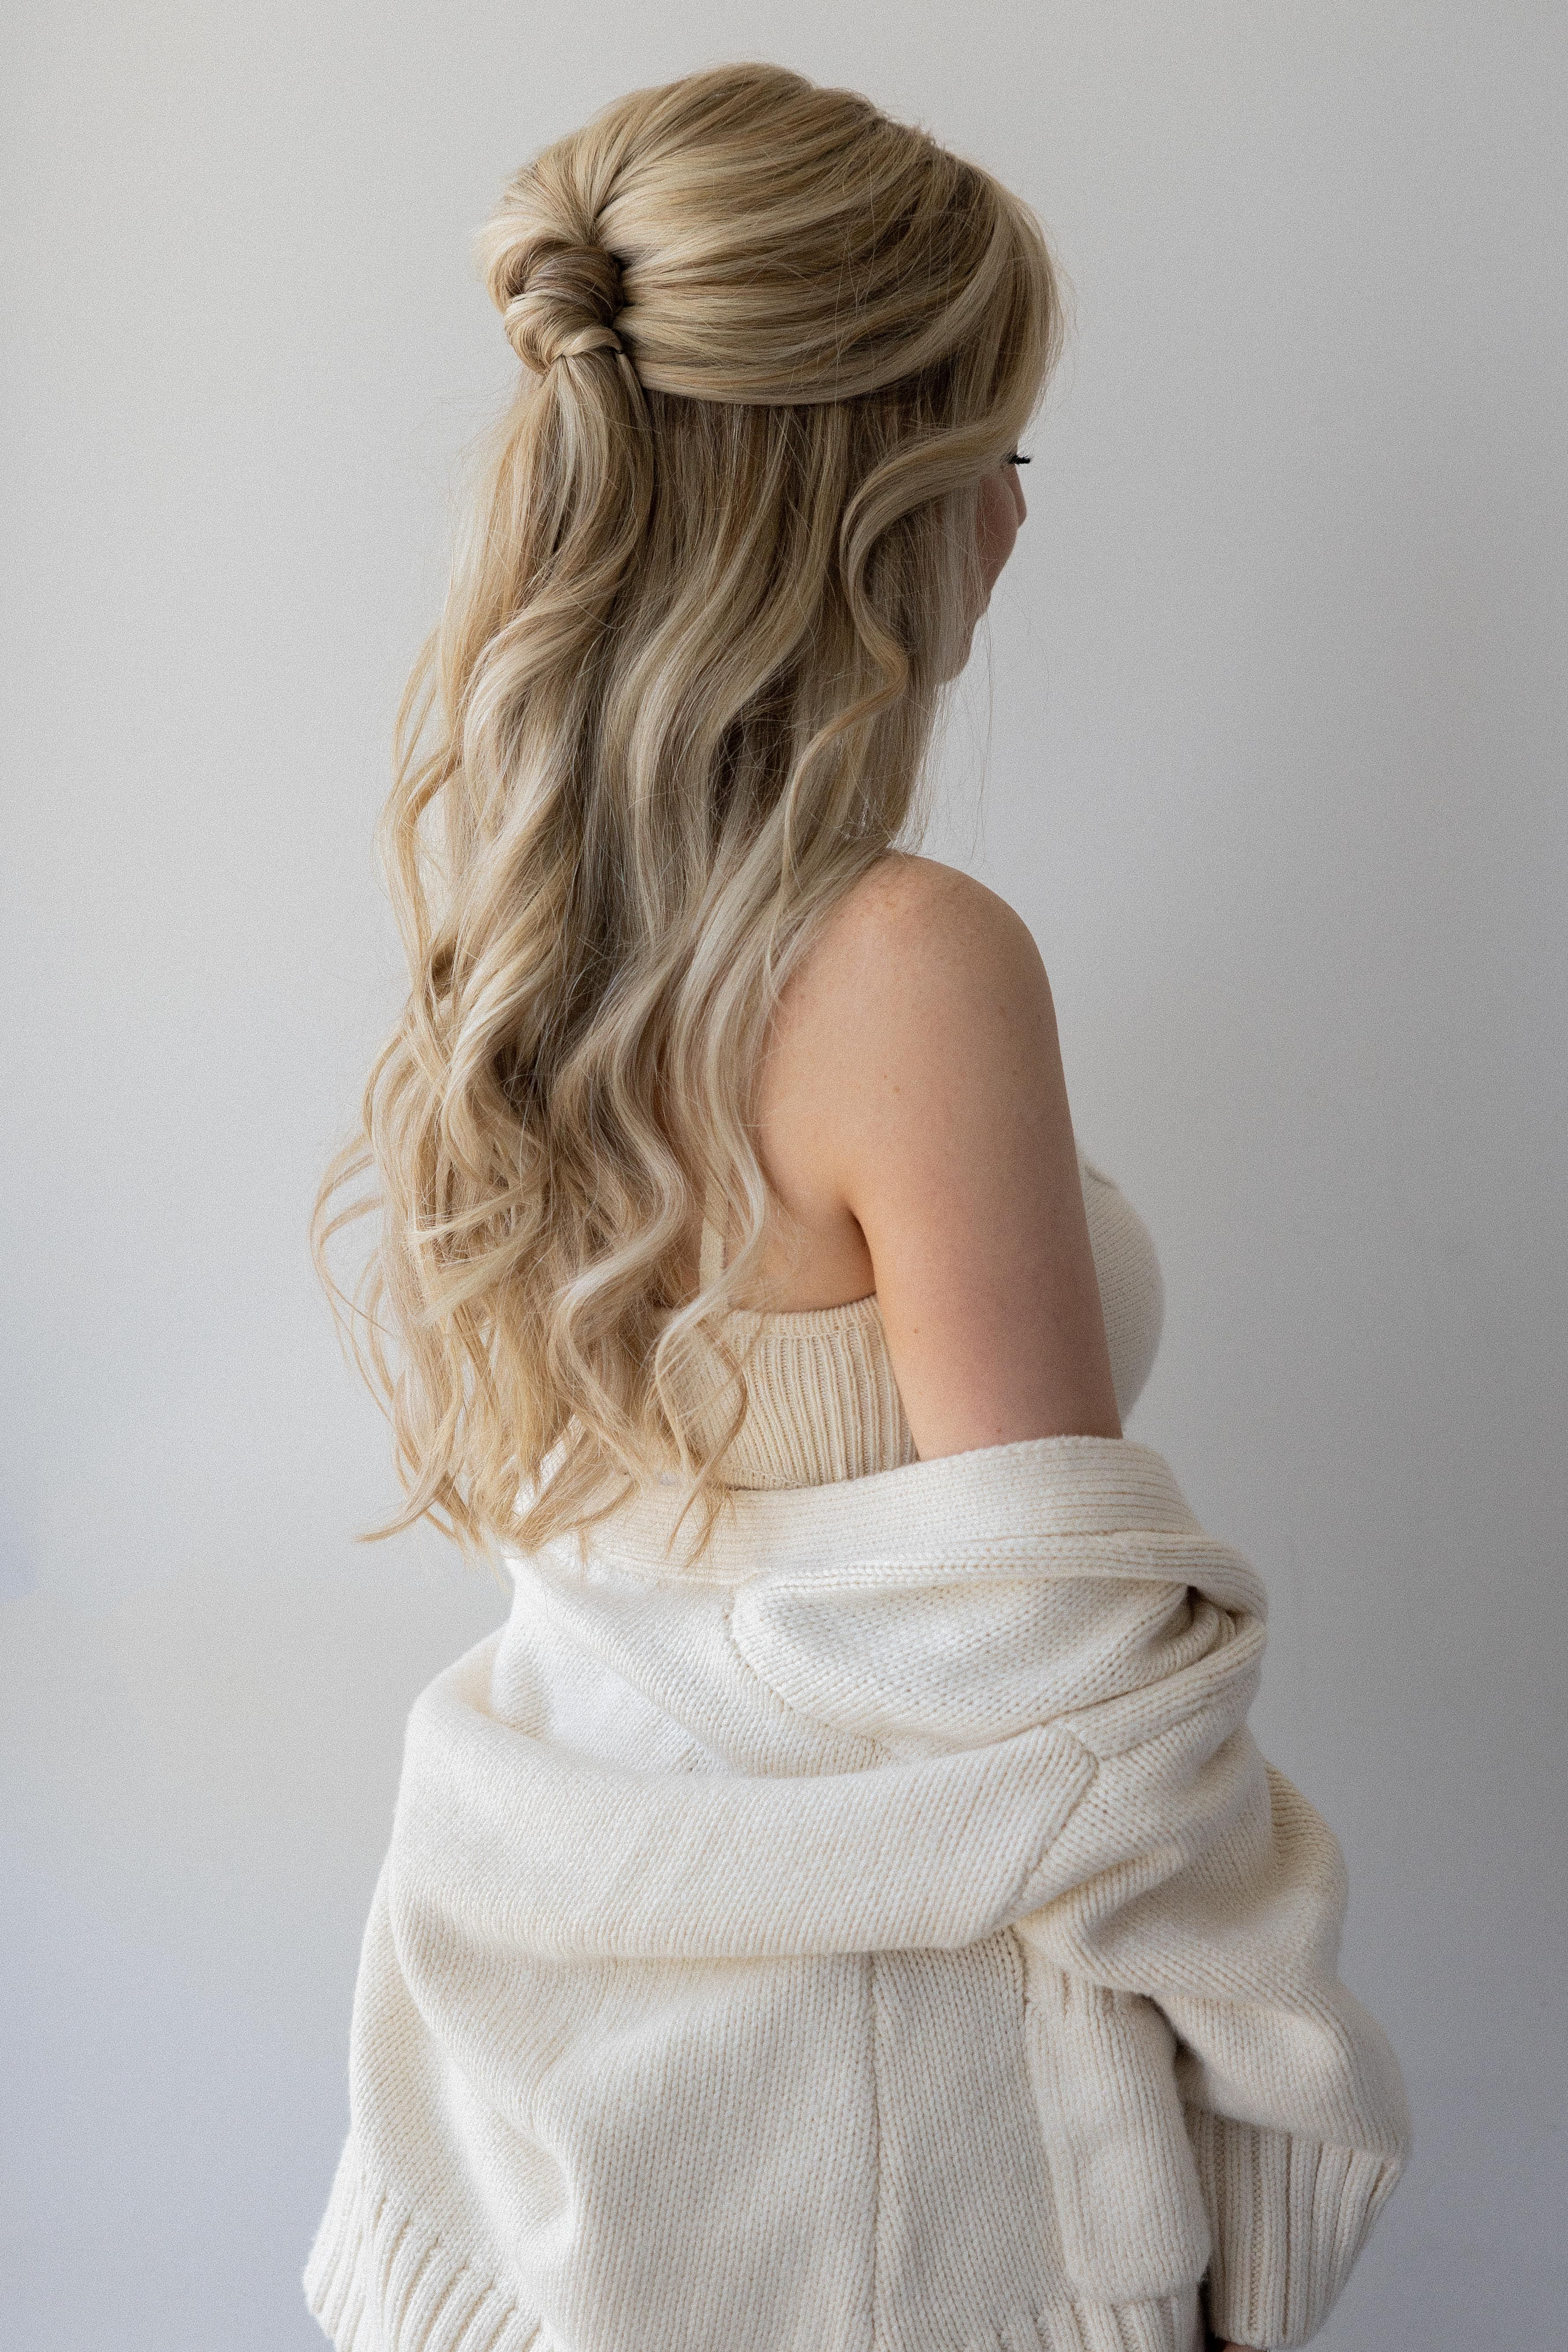 6 QUICK & EASY HAIRSTYLES | Cute Long Hair Hairstyles - Alex Gabour